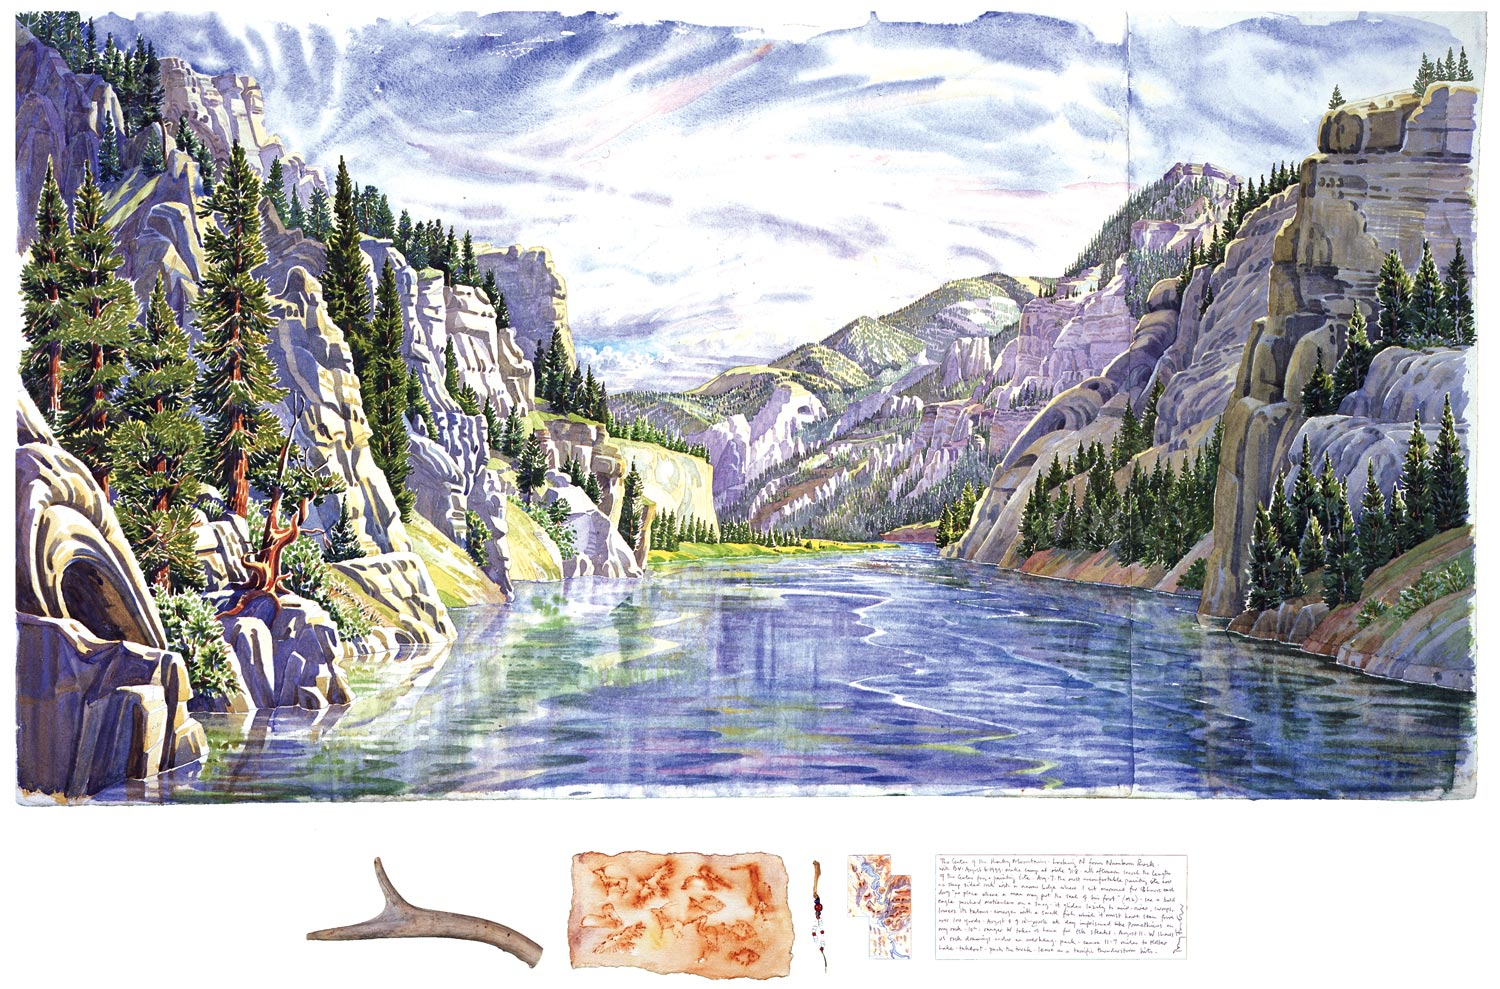 Tony Foster,  The Gates of the Rocky Mountains, Looking N from Numbum Rock , 1999  |  Watercolor and graphite on paper, mixed media  |  22 1/4 x 40 1/2 in. / 3 1/2 x 24 1/2 in.  |  1998.1.14